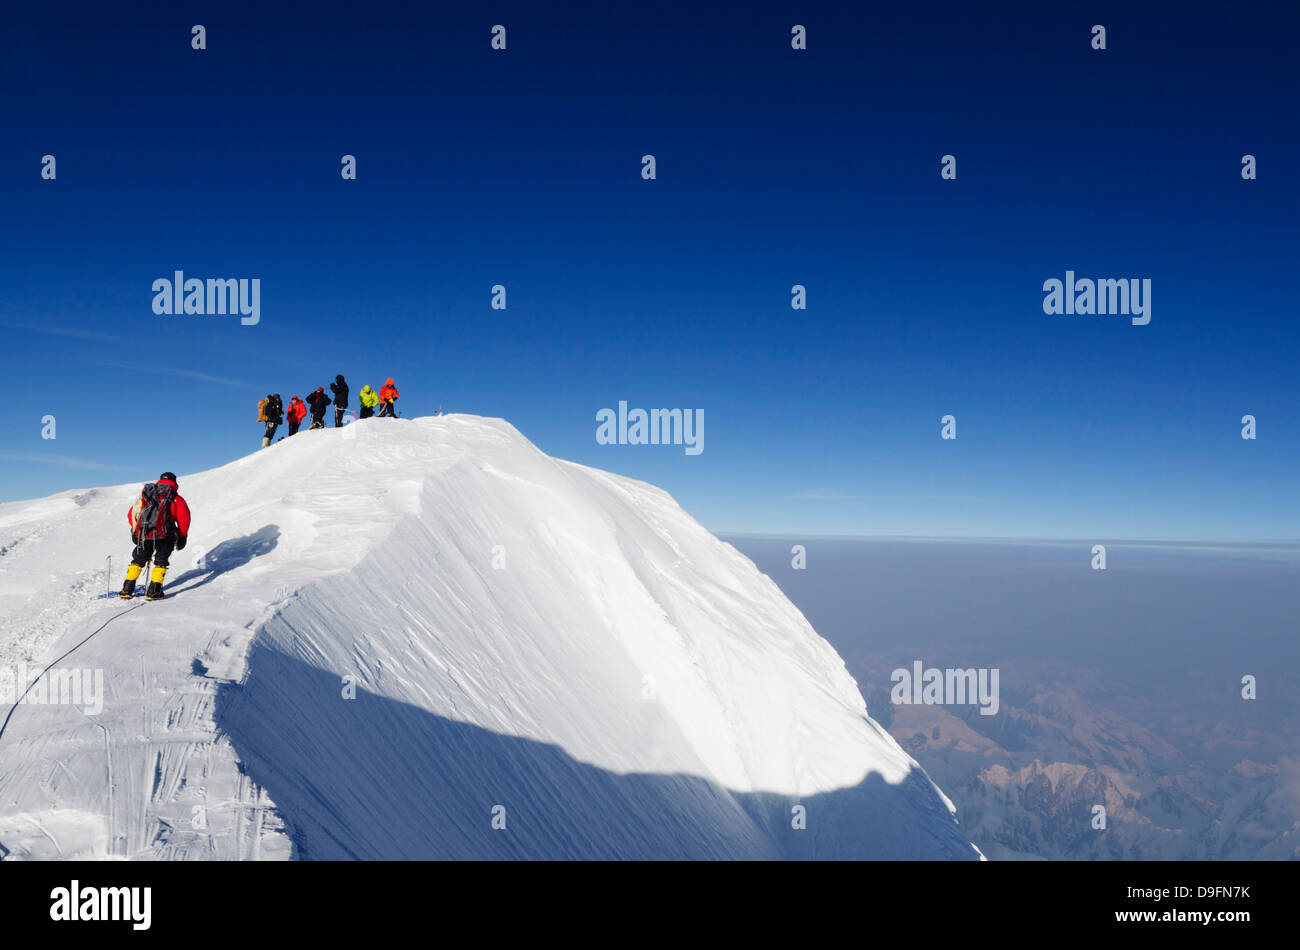 Gipfelgrat Klettern Expedition auf den Mount McKinley, 6194m, Denali National Park, Alaska, USA Stockbild